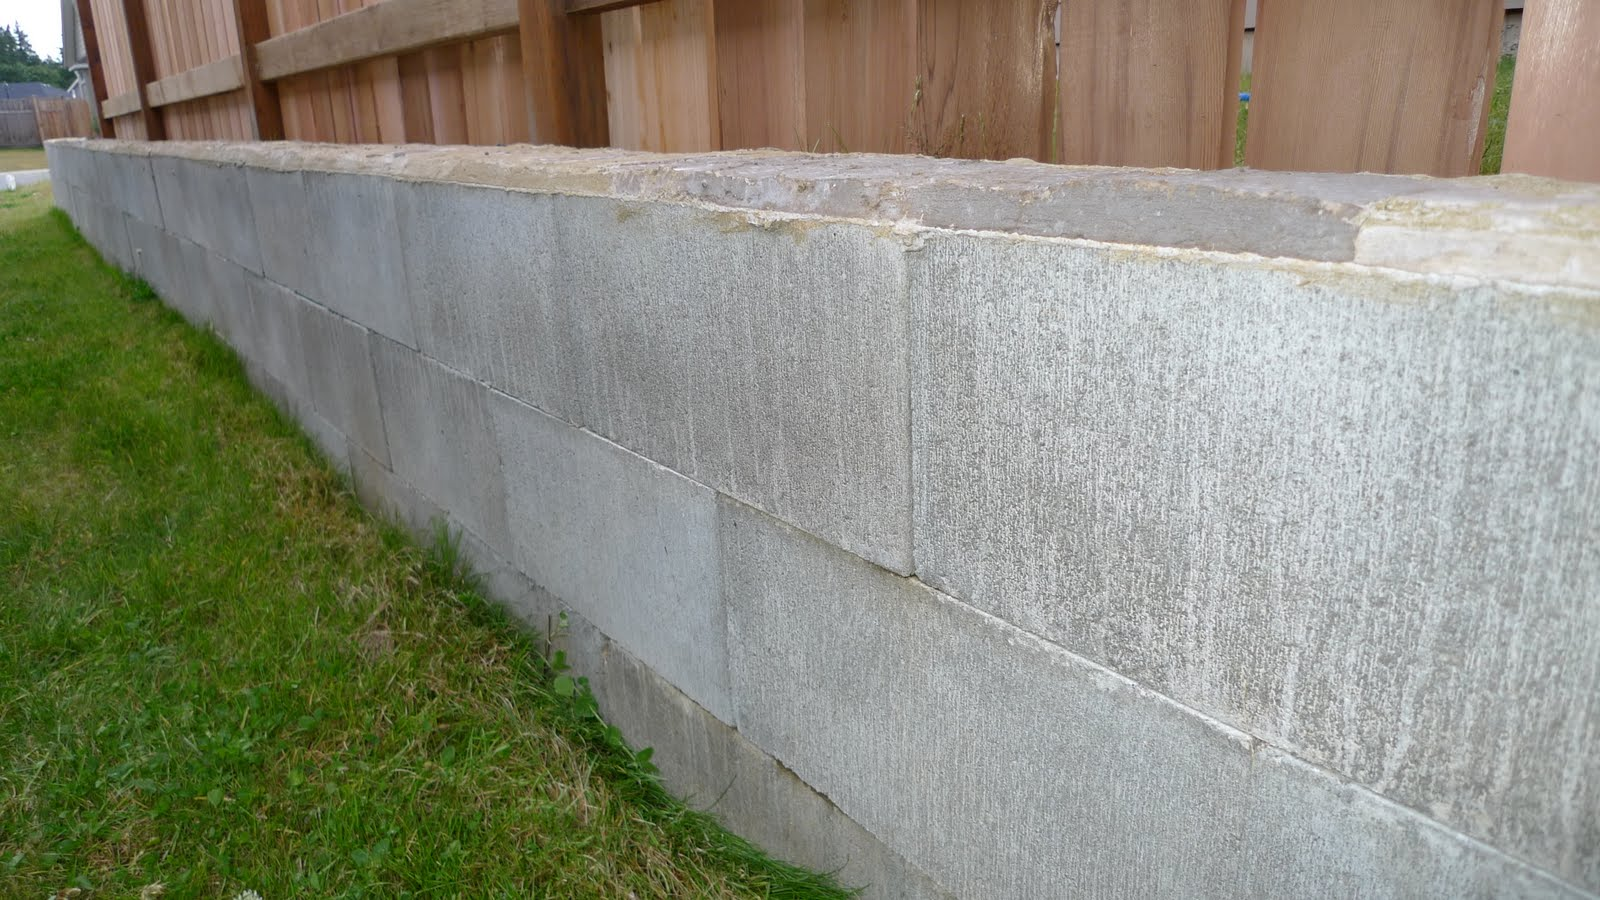 The continuing saga of the new home owner dry stacked Cinder block retaining wall